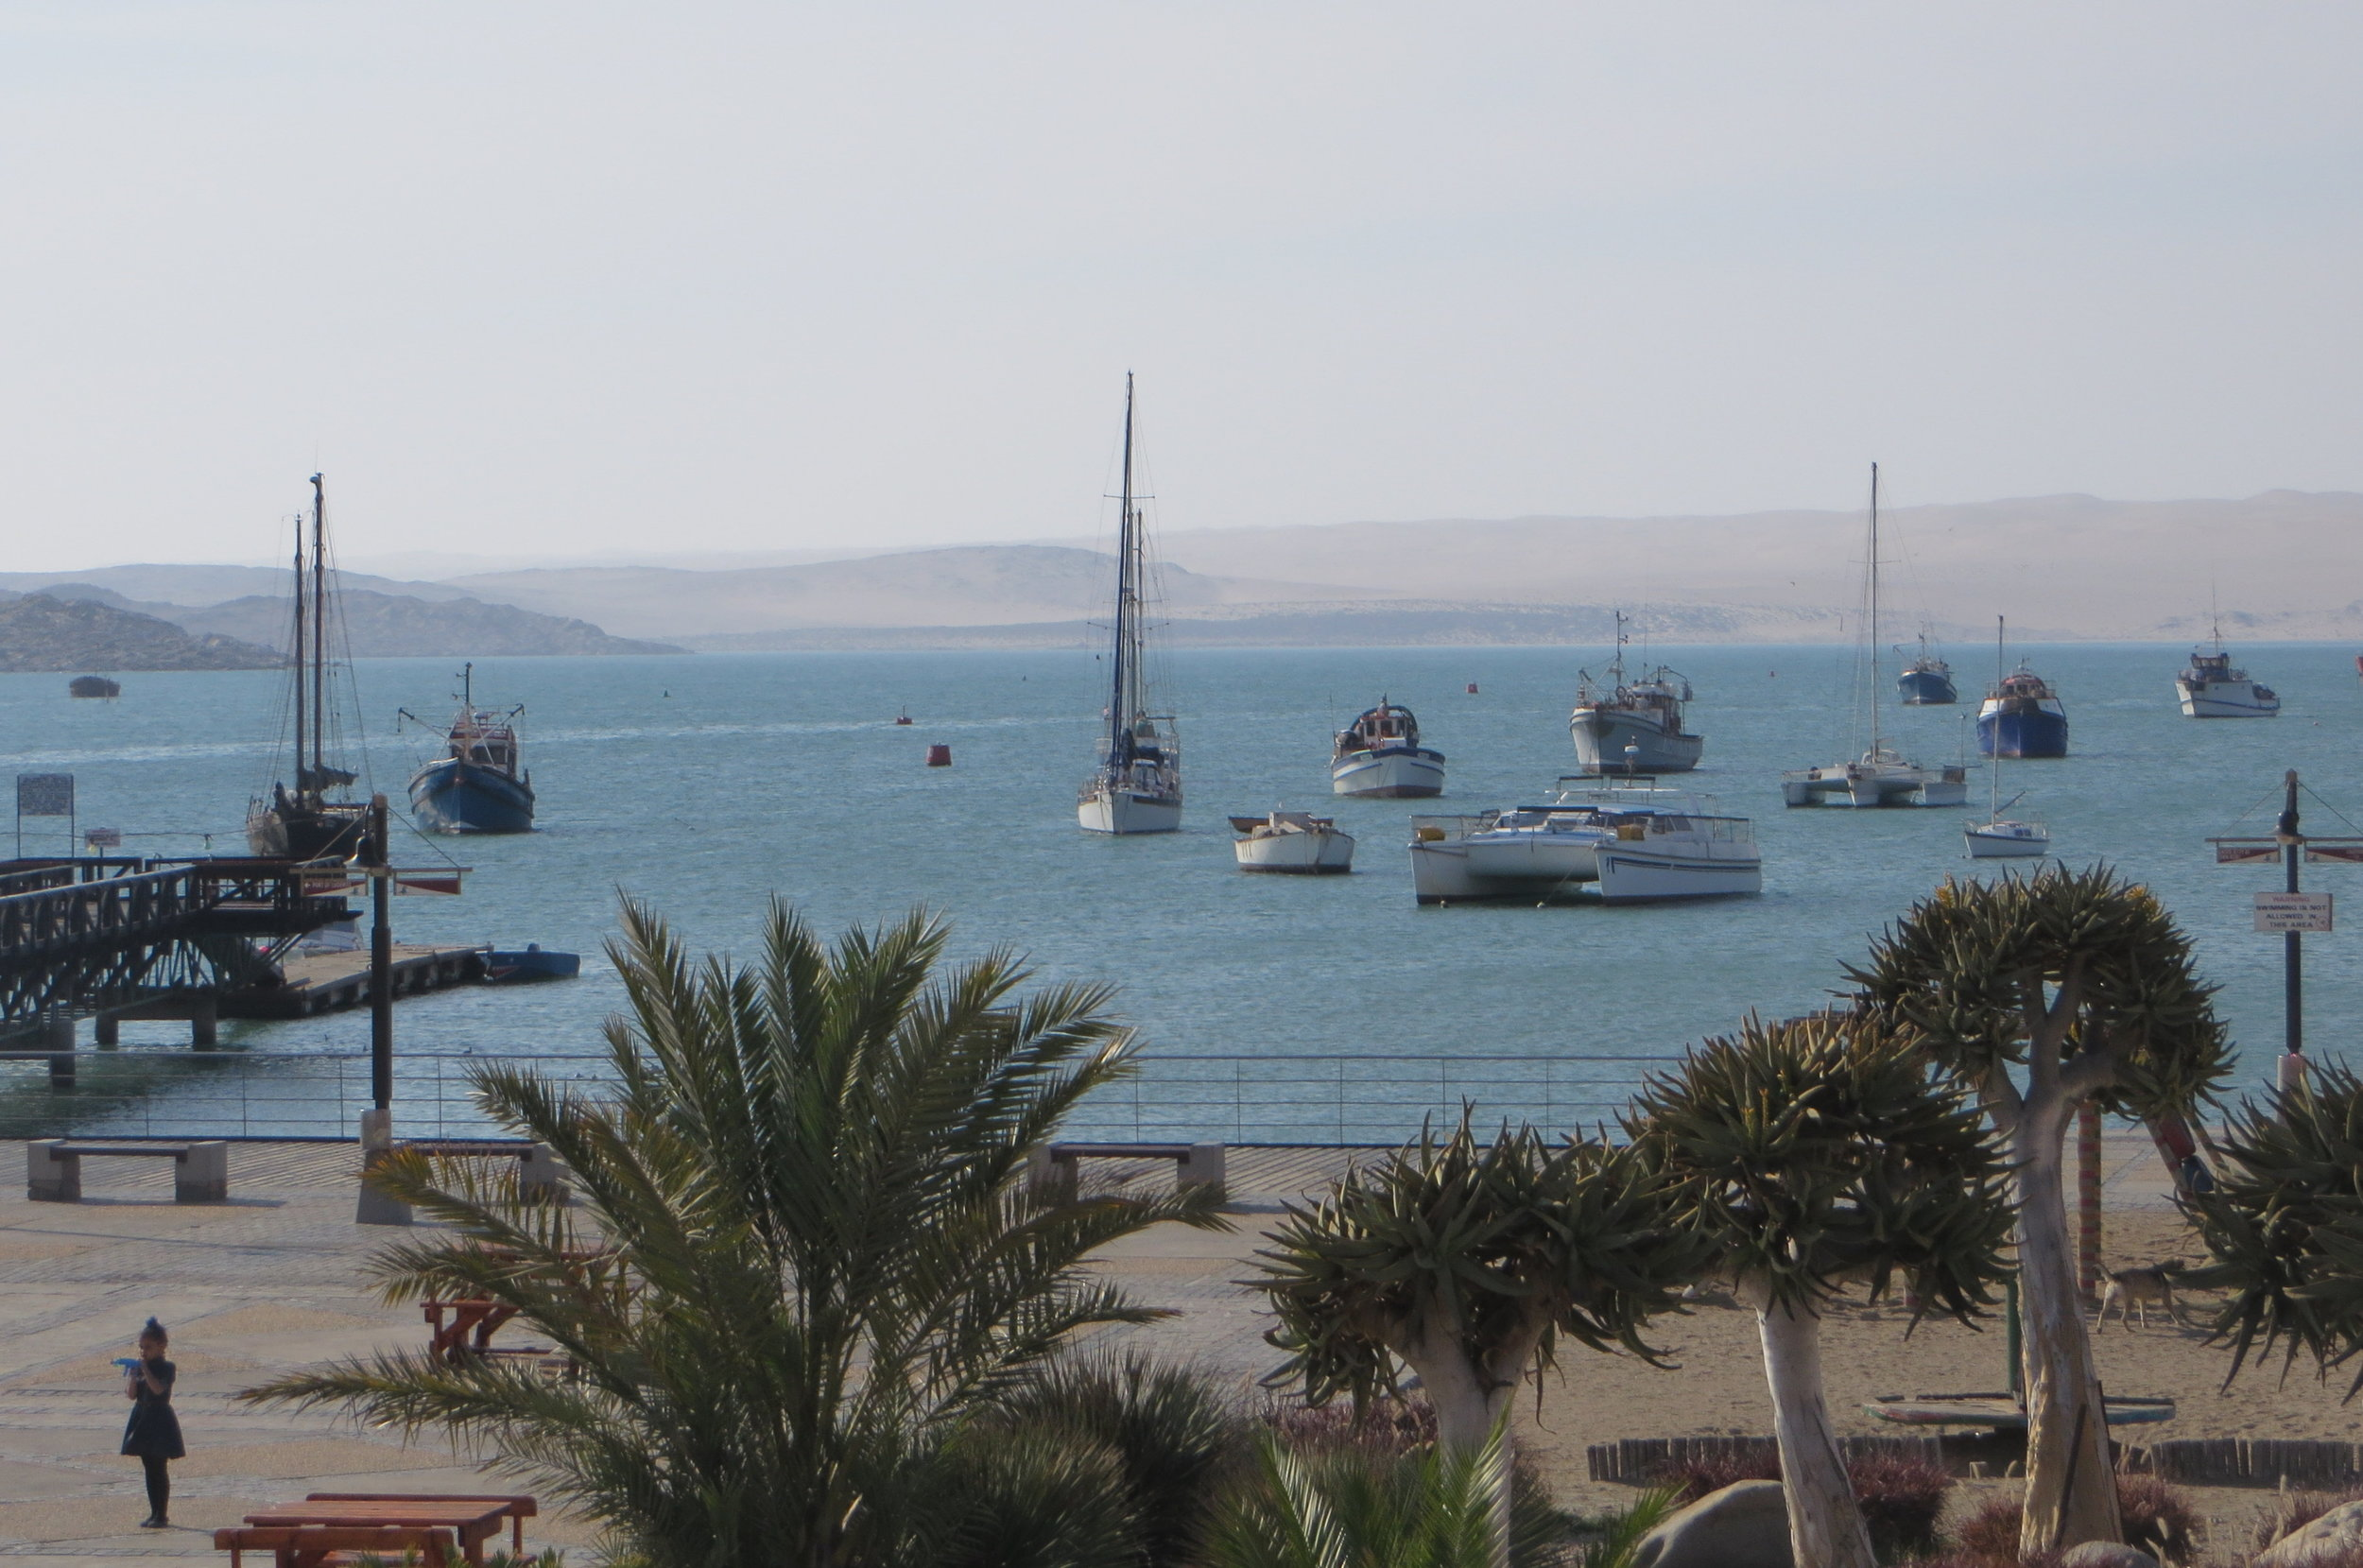 Lüderitz anchorage with the waterfront park in the foreground.